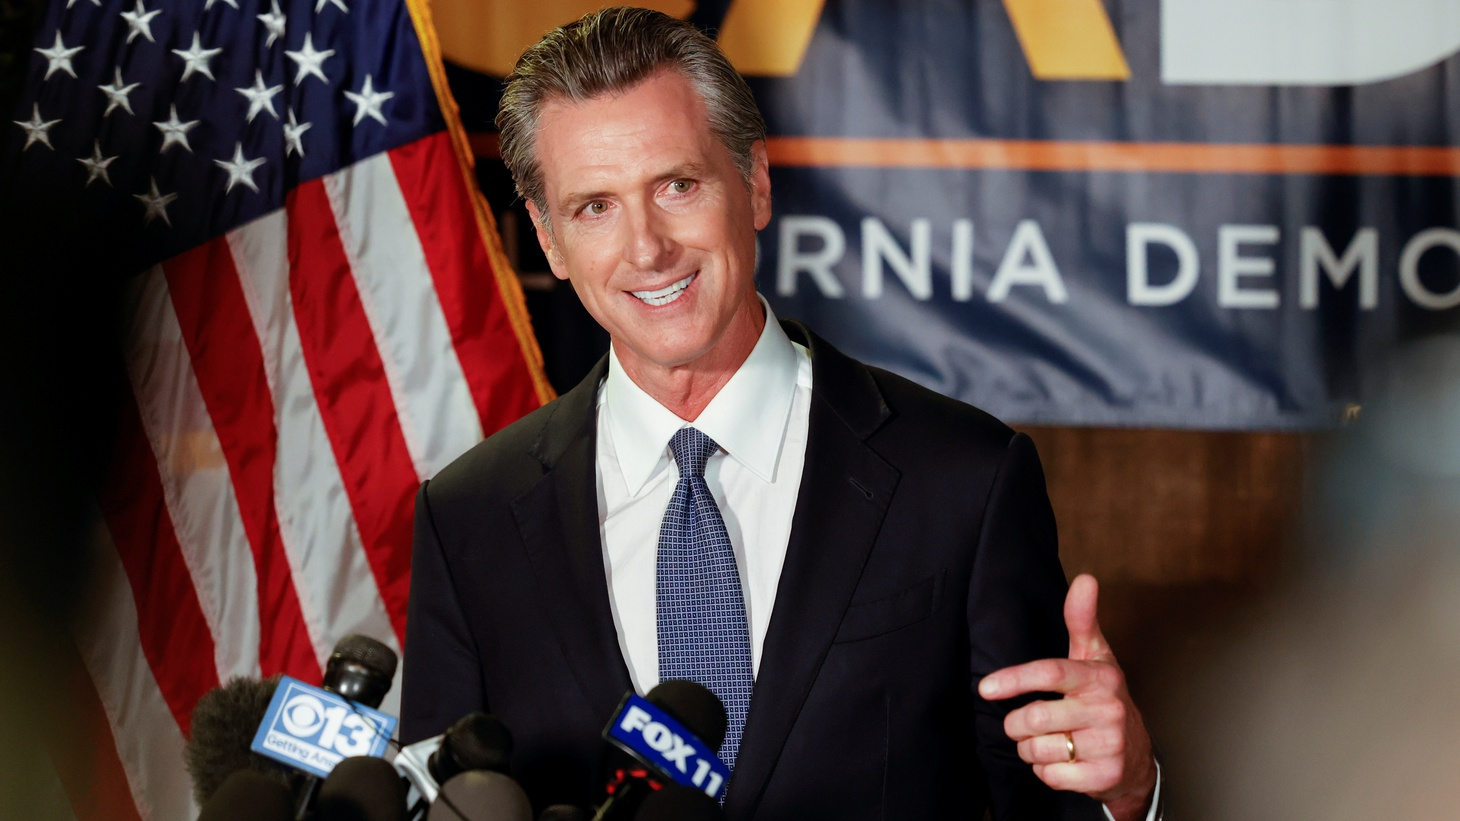 California Governor Gavin Newsom speaks after the polls close on the recall election, at the California Democratic Party headquarters in Sacramento, California, U.S., September 14, 2021.